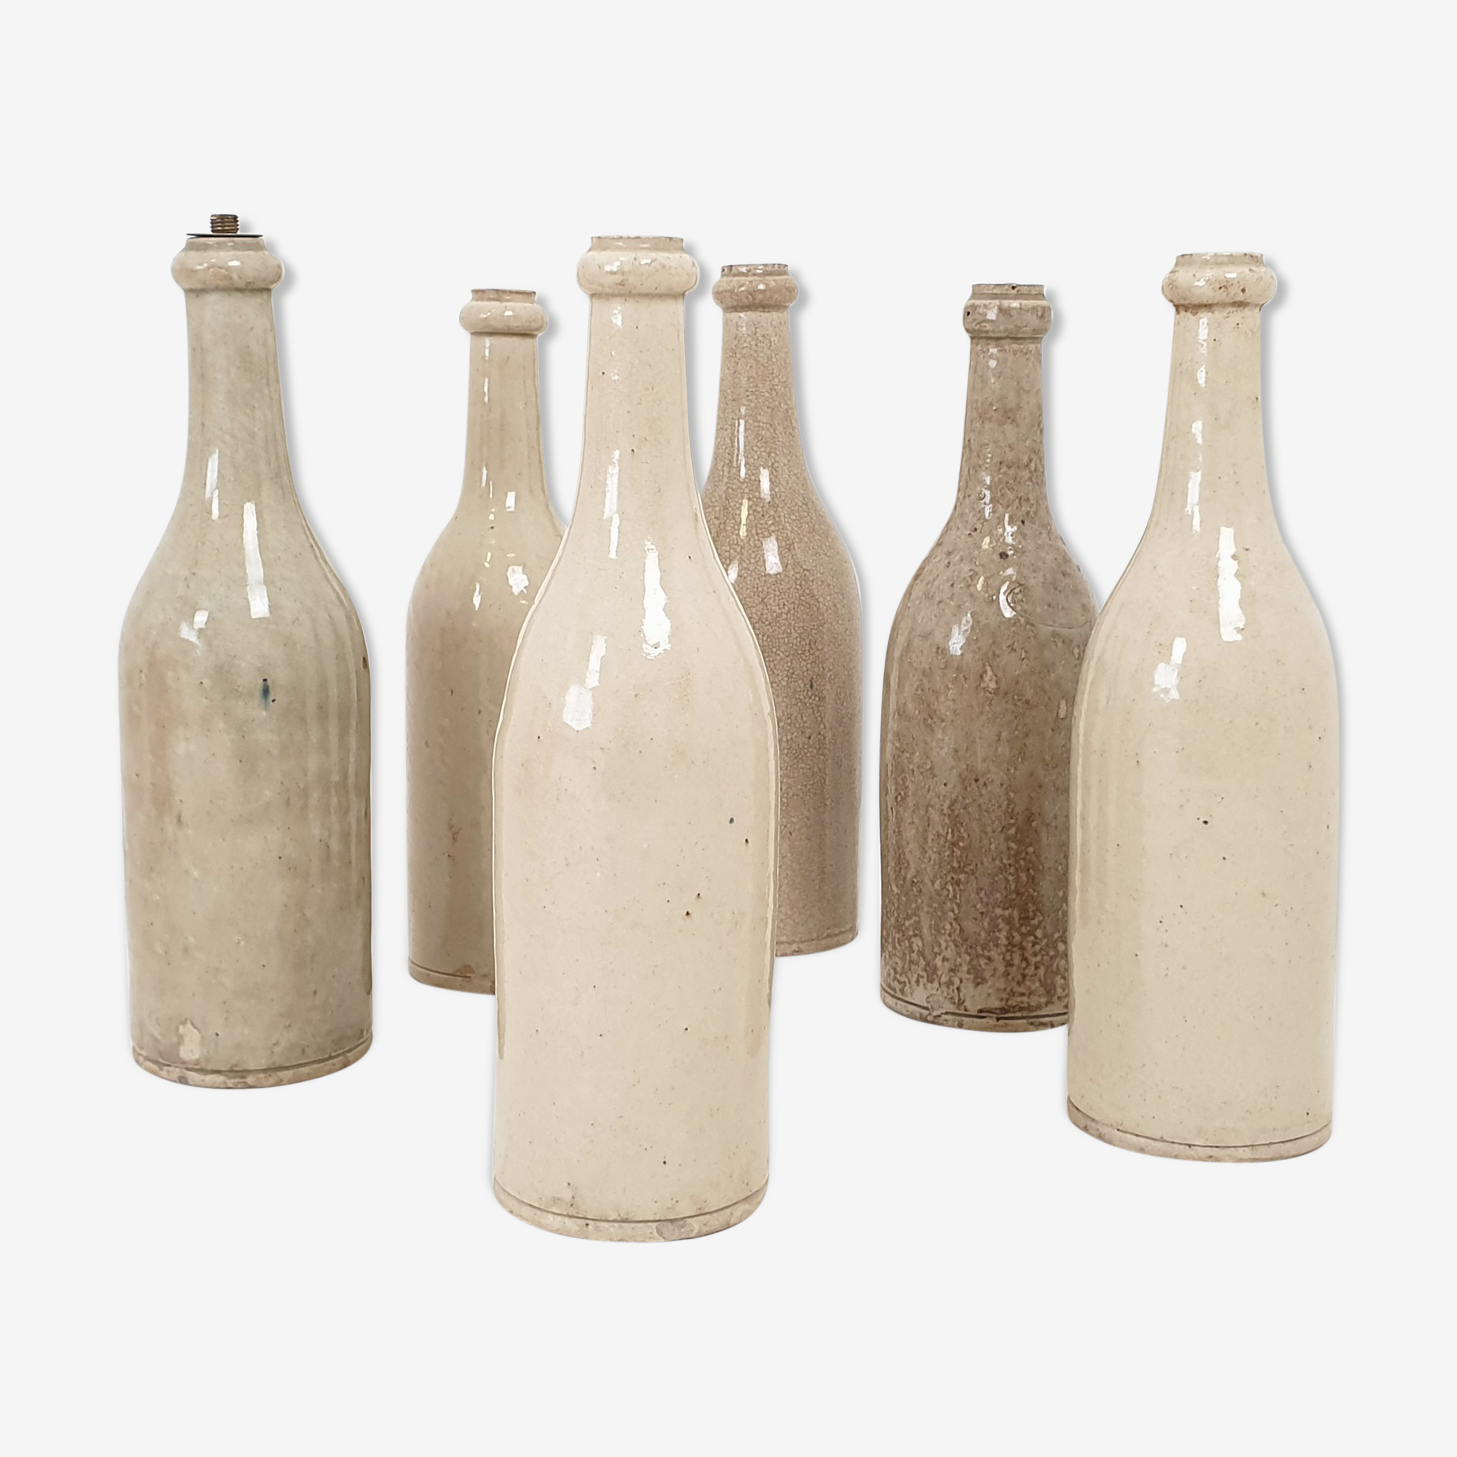 Set of 6 bottles in sandstone